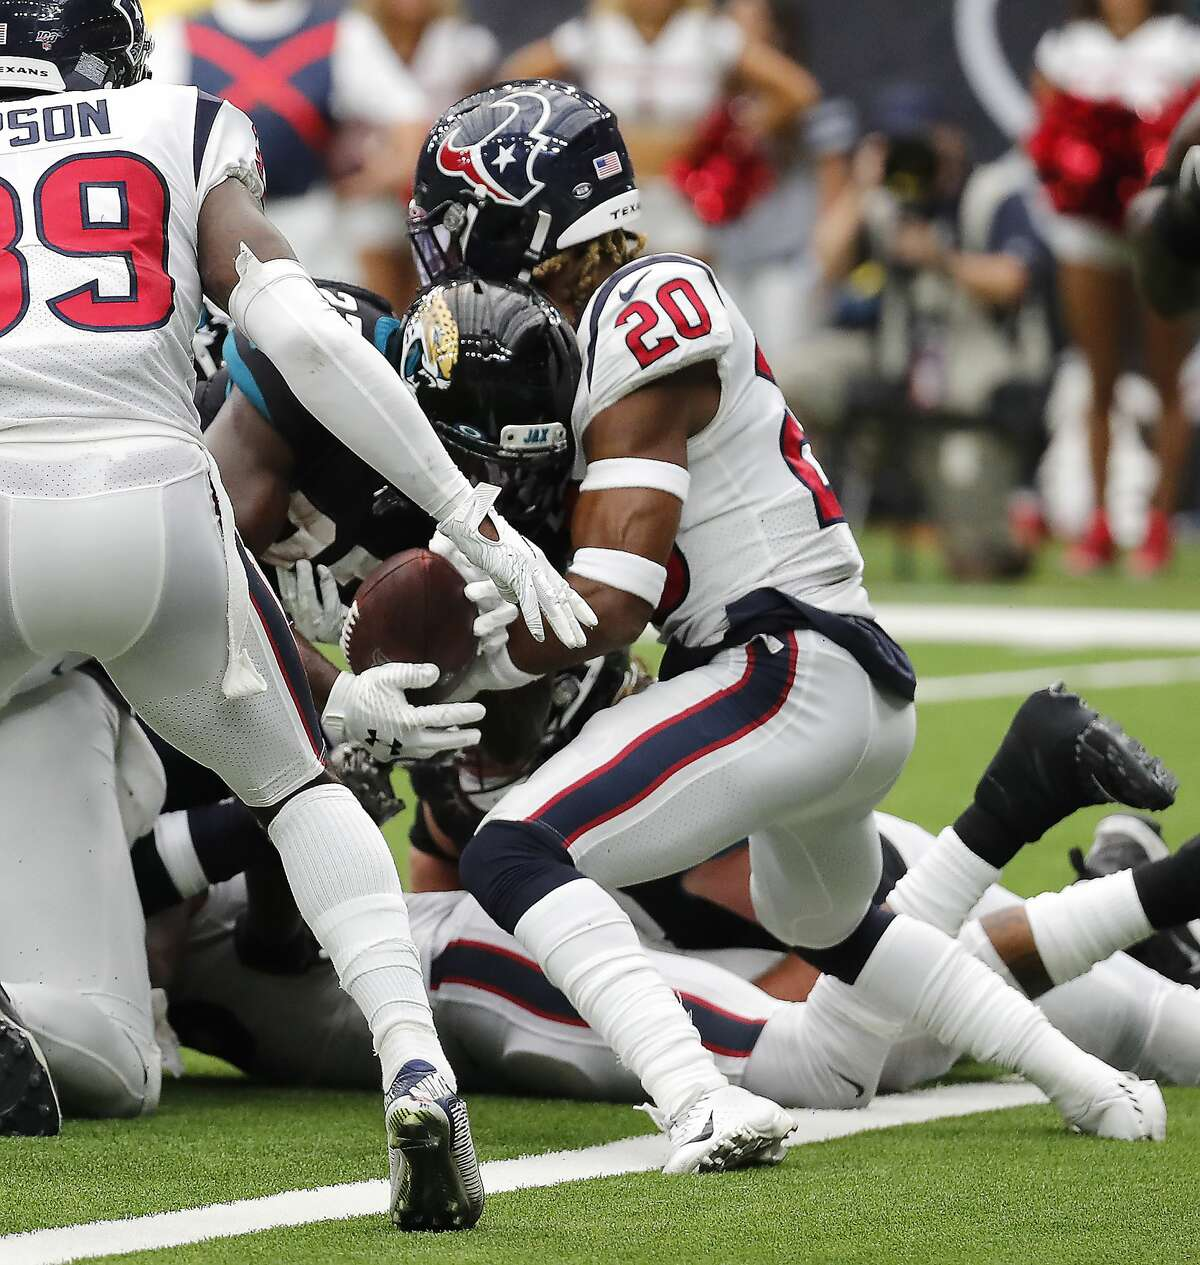 Houston Texans strong safety Justin Reid (20) stops Jacksonville Jaguars running back Leonard Fournette (27) short of the goal line on a 21-point conversion try during an NFL football game at NRG Stadium on Sunday, Sept. 15, 2019, in Houston.